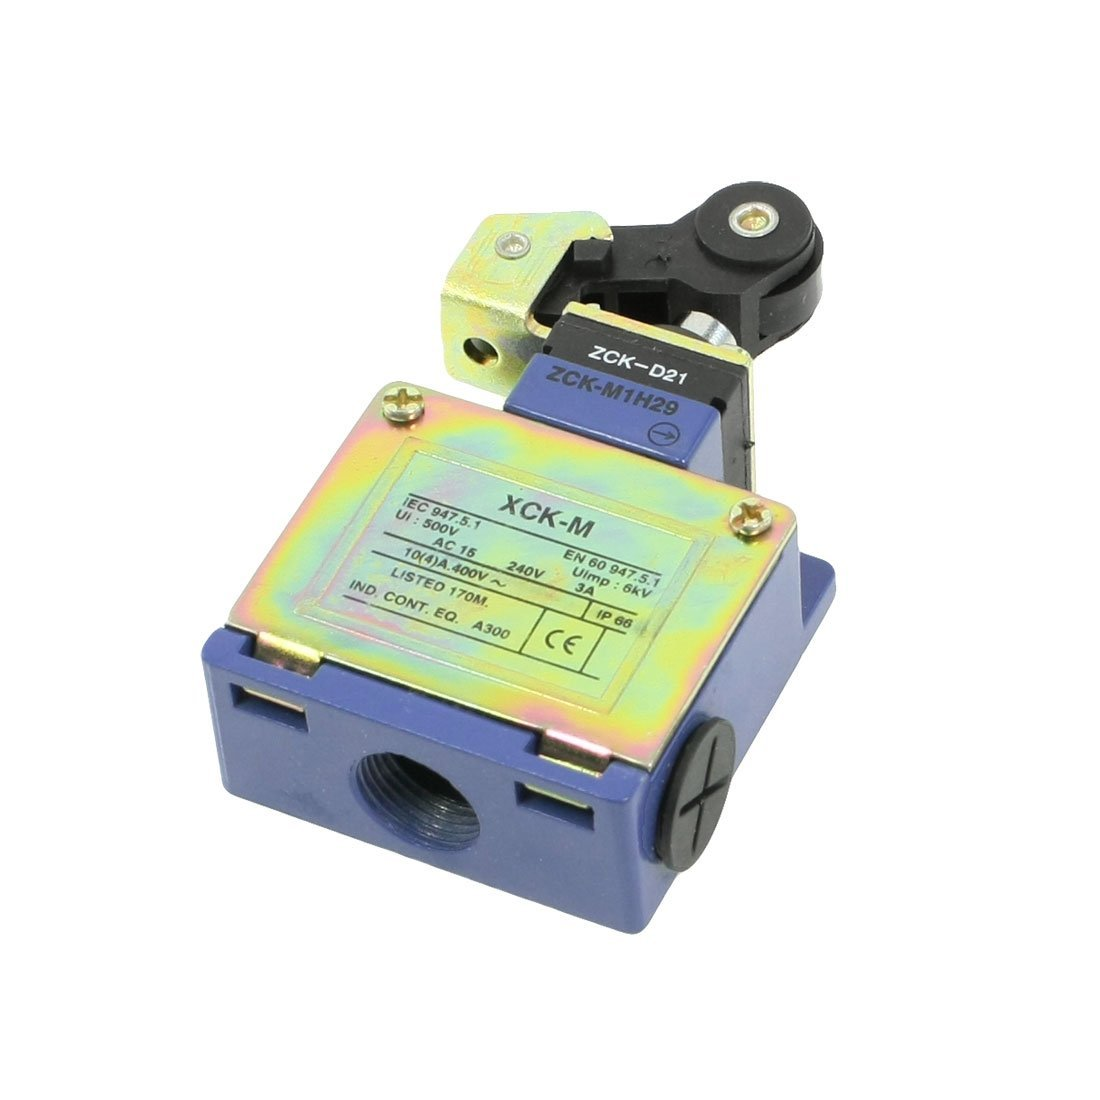 Uxcell XCK-M1H29 500V 6KW AC 240V 3 Amp Momentary Top Plunger Actuator Limited Switch